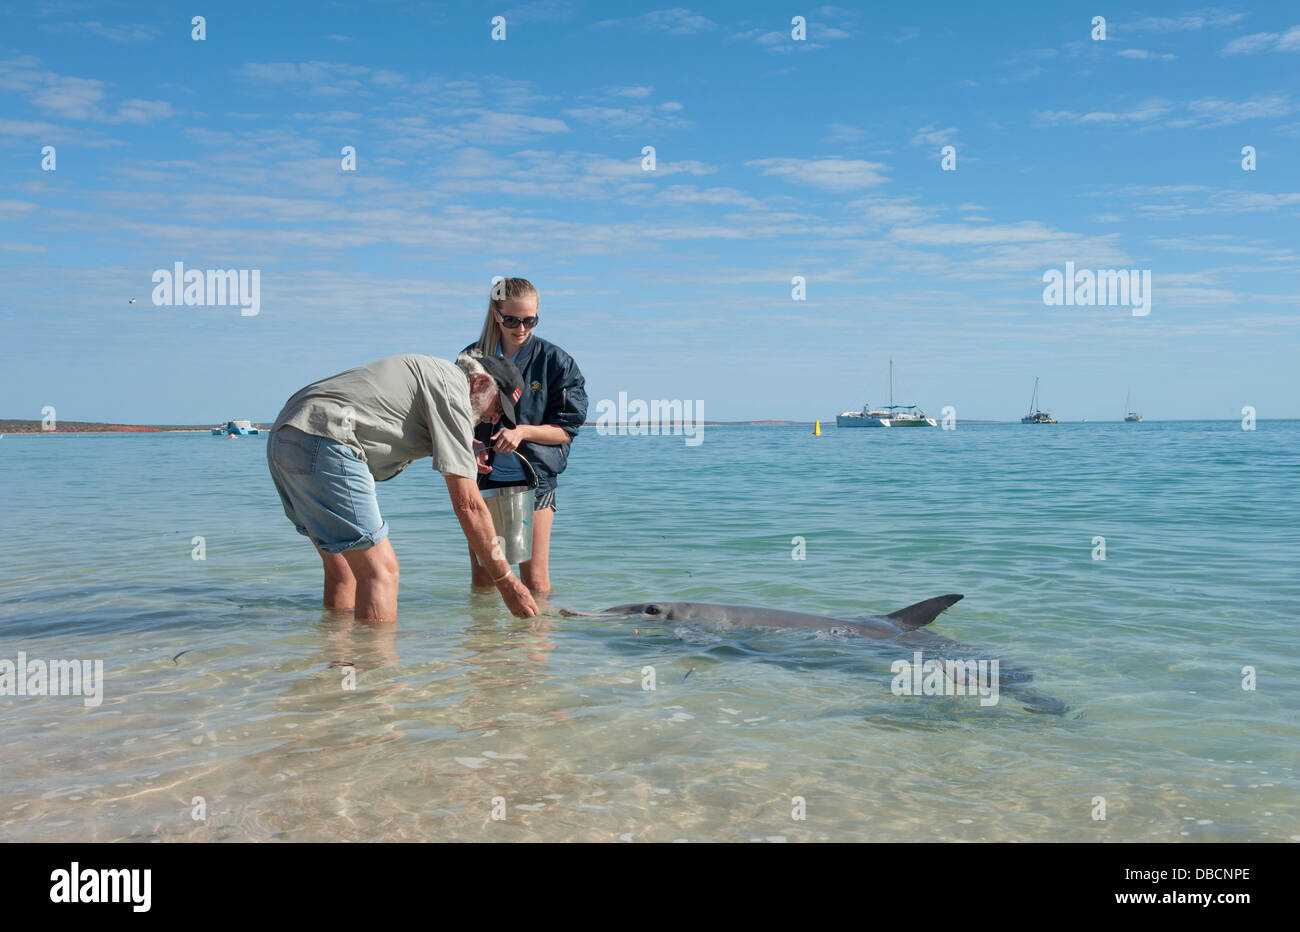 Feeding the dolphins programme for tourists by park rangers at Monkey Mia, Shark Bay, Western Australia - Stock Image